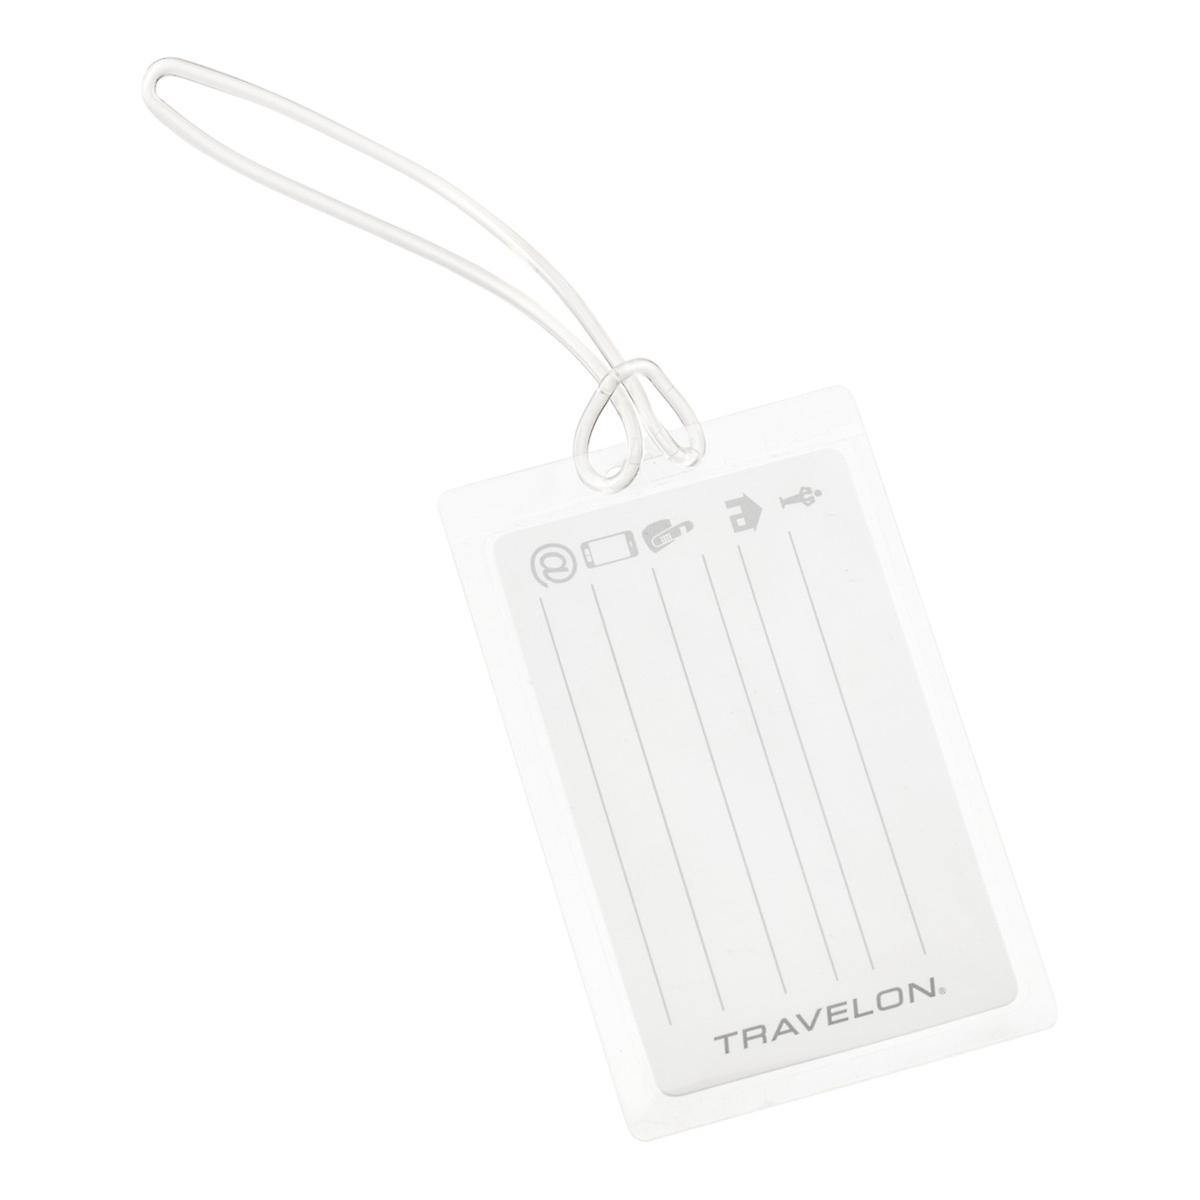 Travelon Self-Laminating Luggage Tags | The Container Store